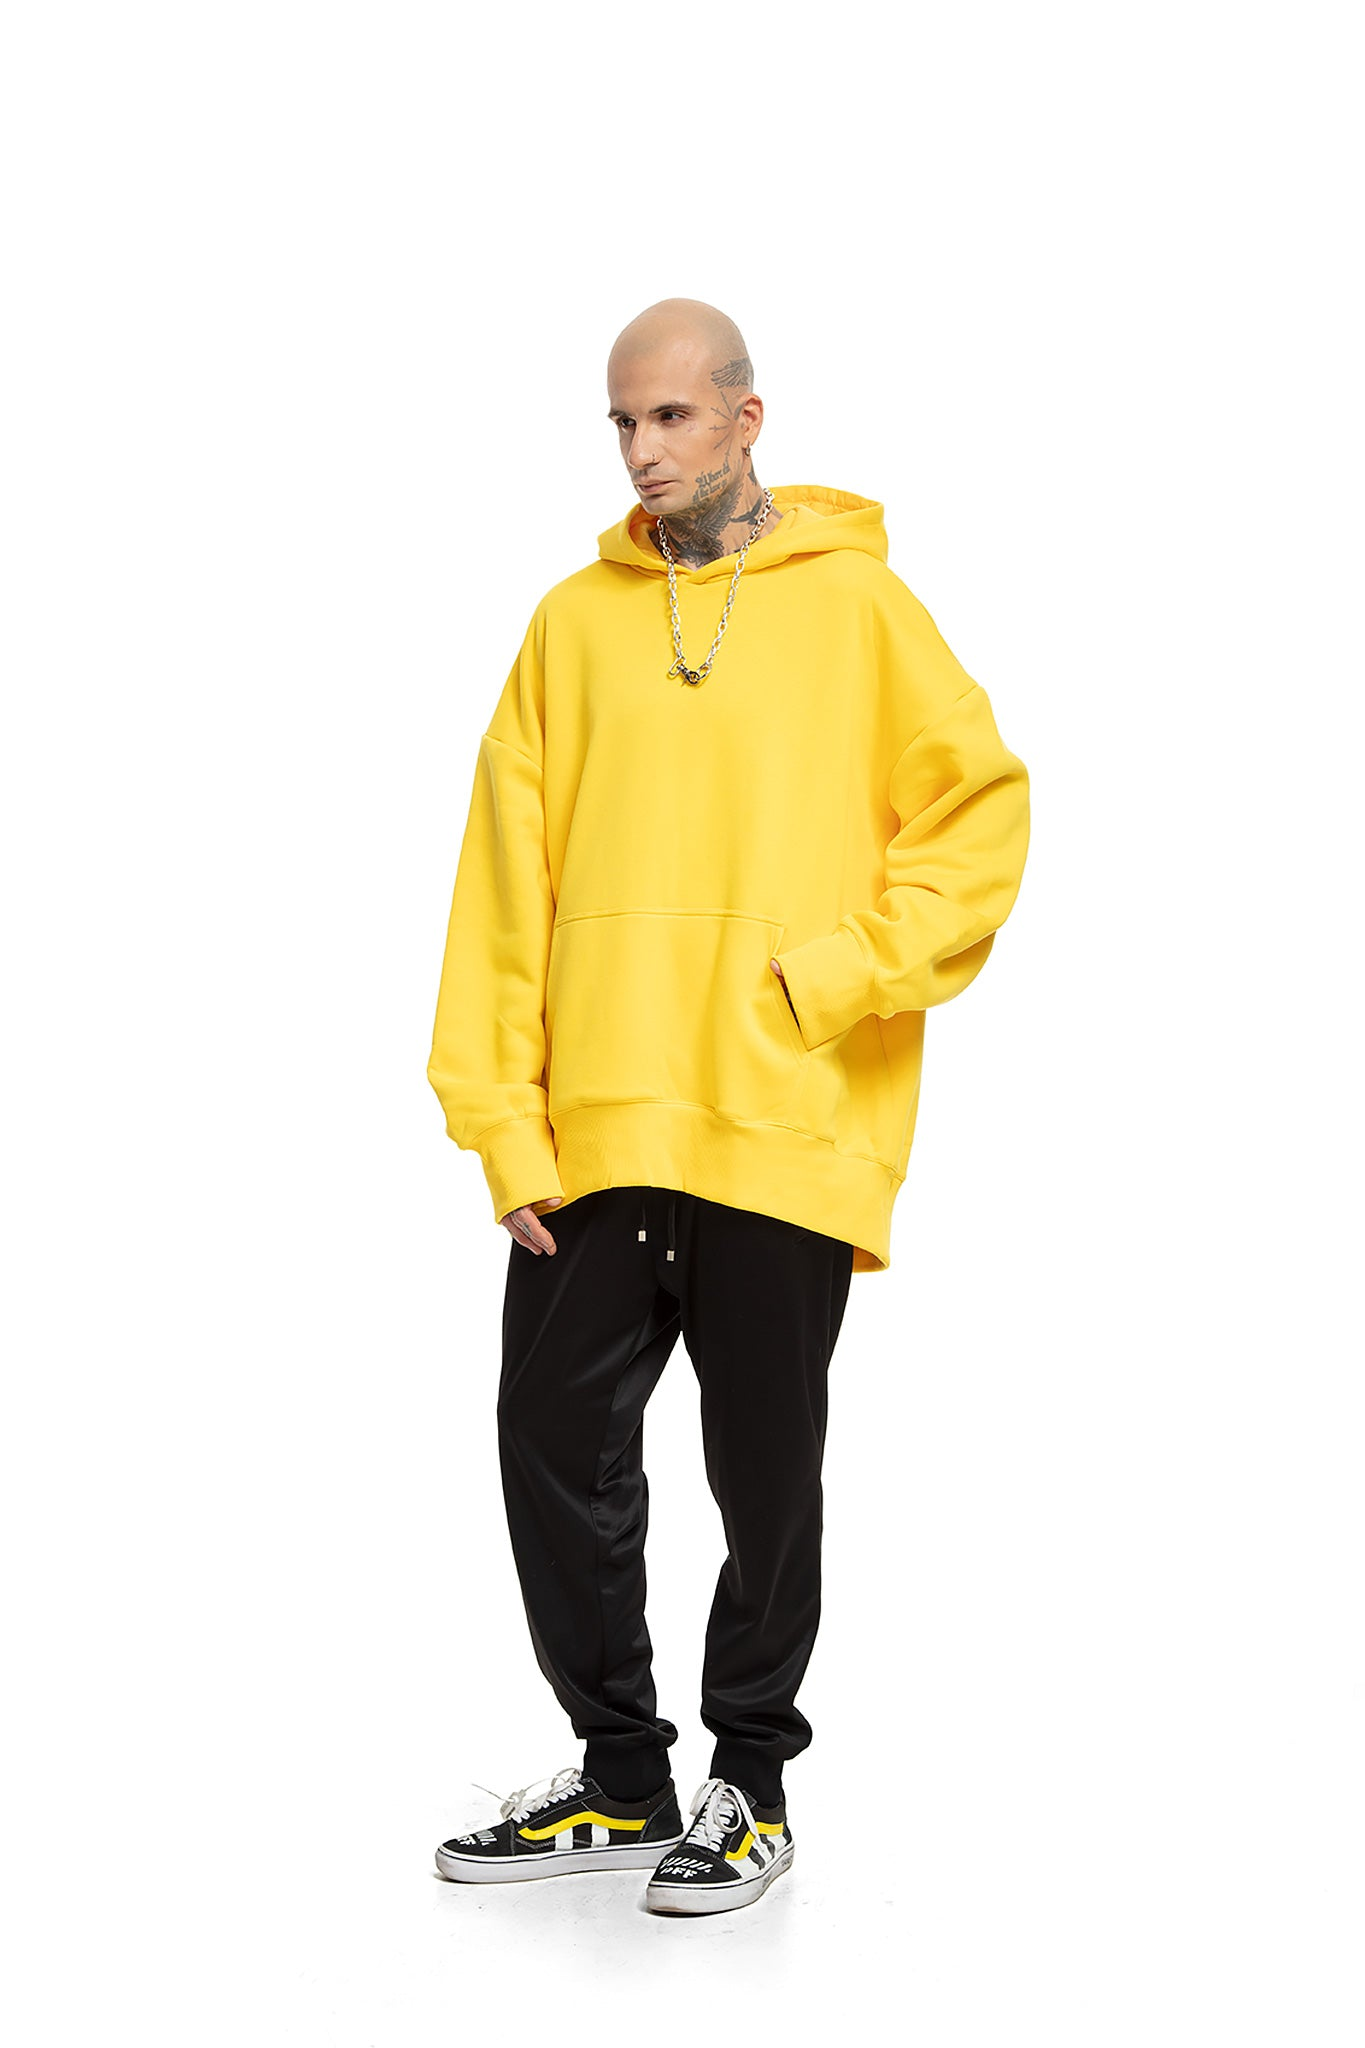 Super Oversized [Yellow] Sweatshirts